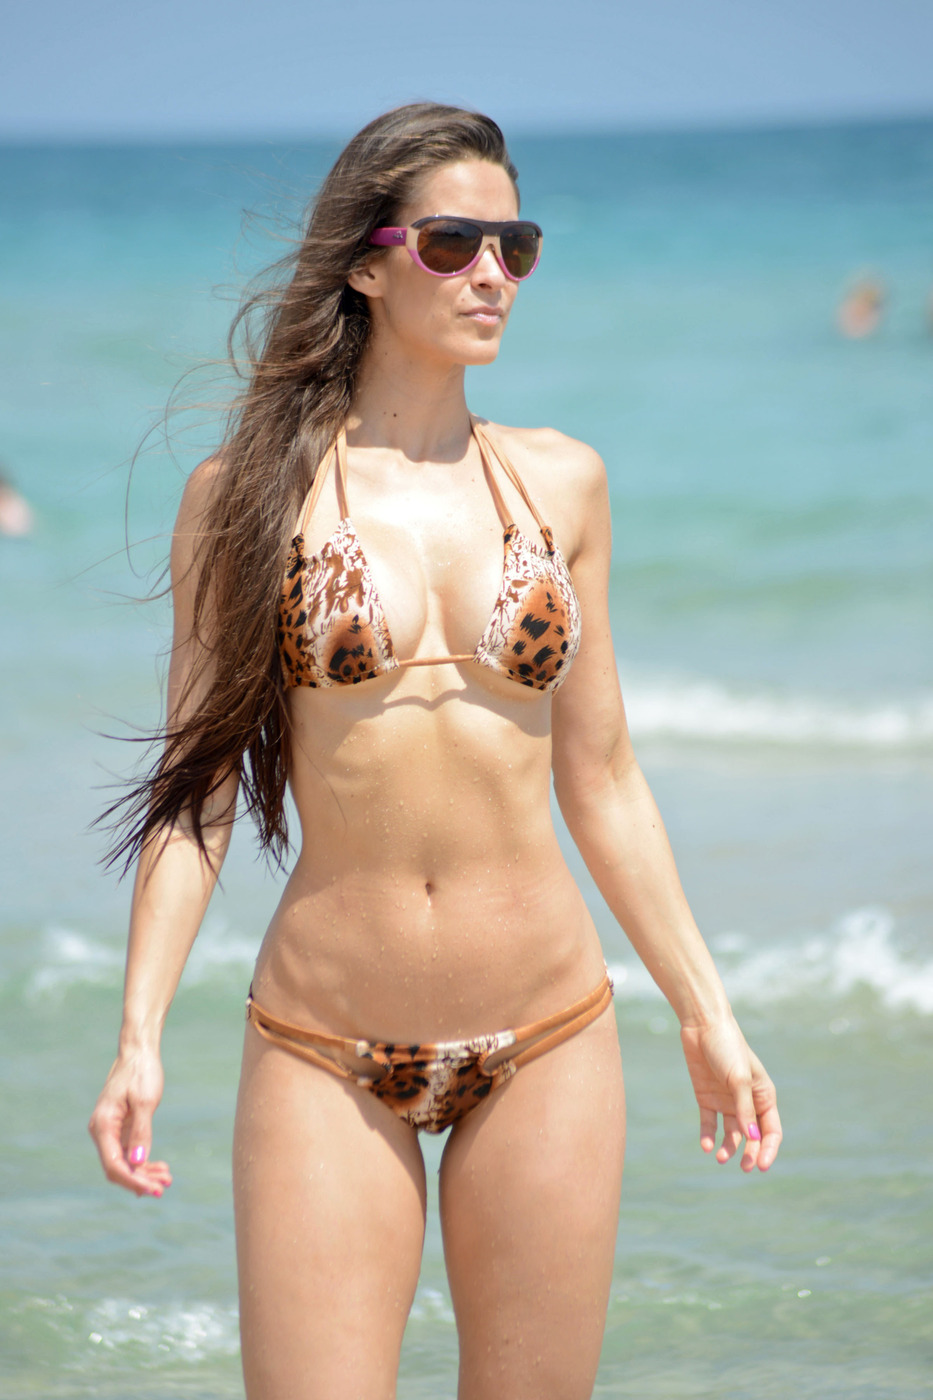 EXCLUSIVE: Model Anais Zanotti turns heads as she rocks a skimpy bikini on the beach in Miami